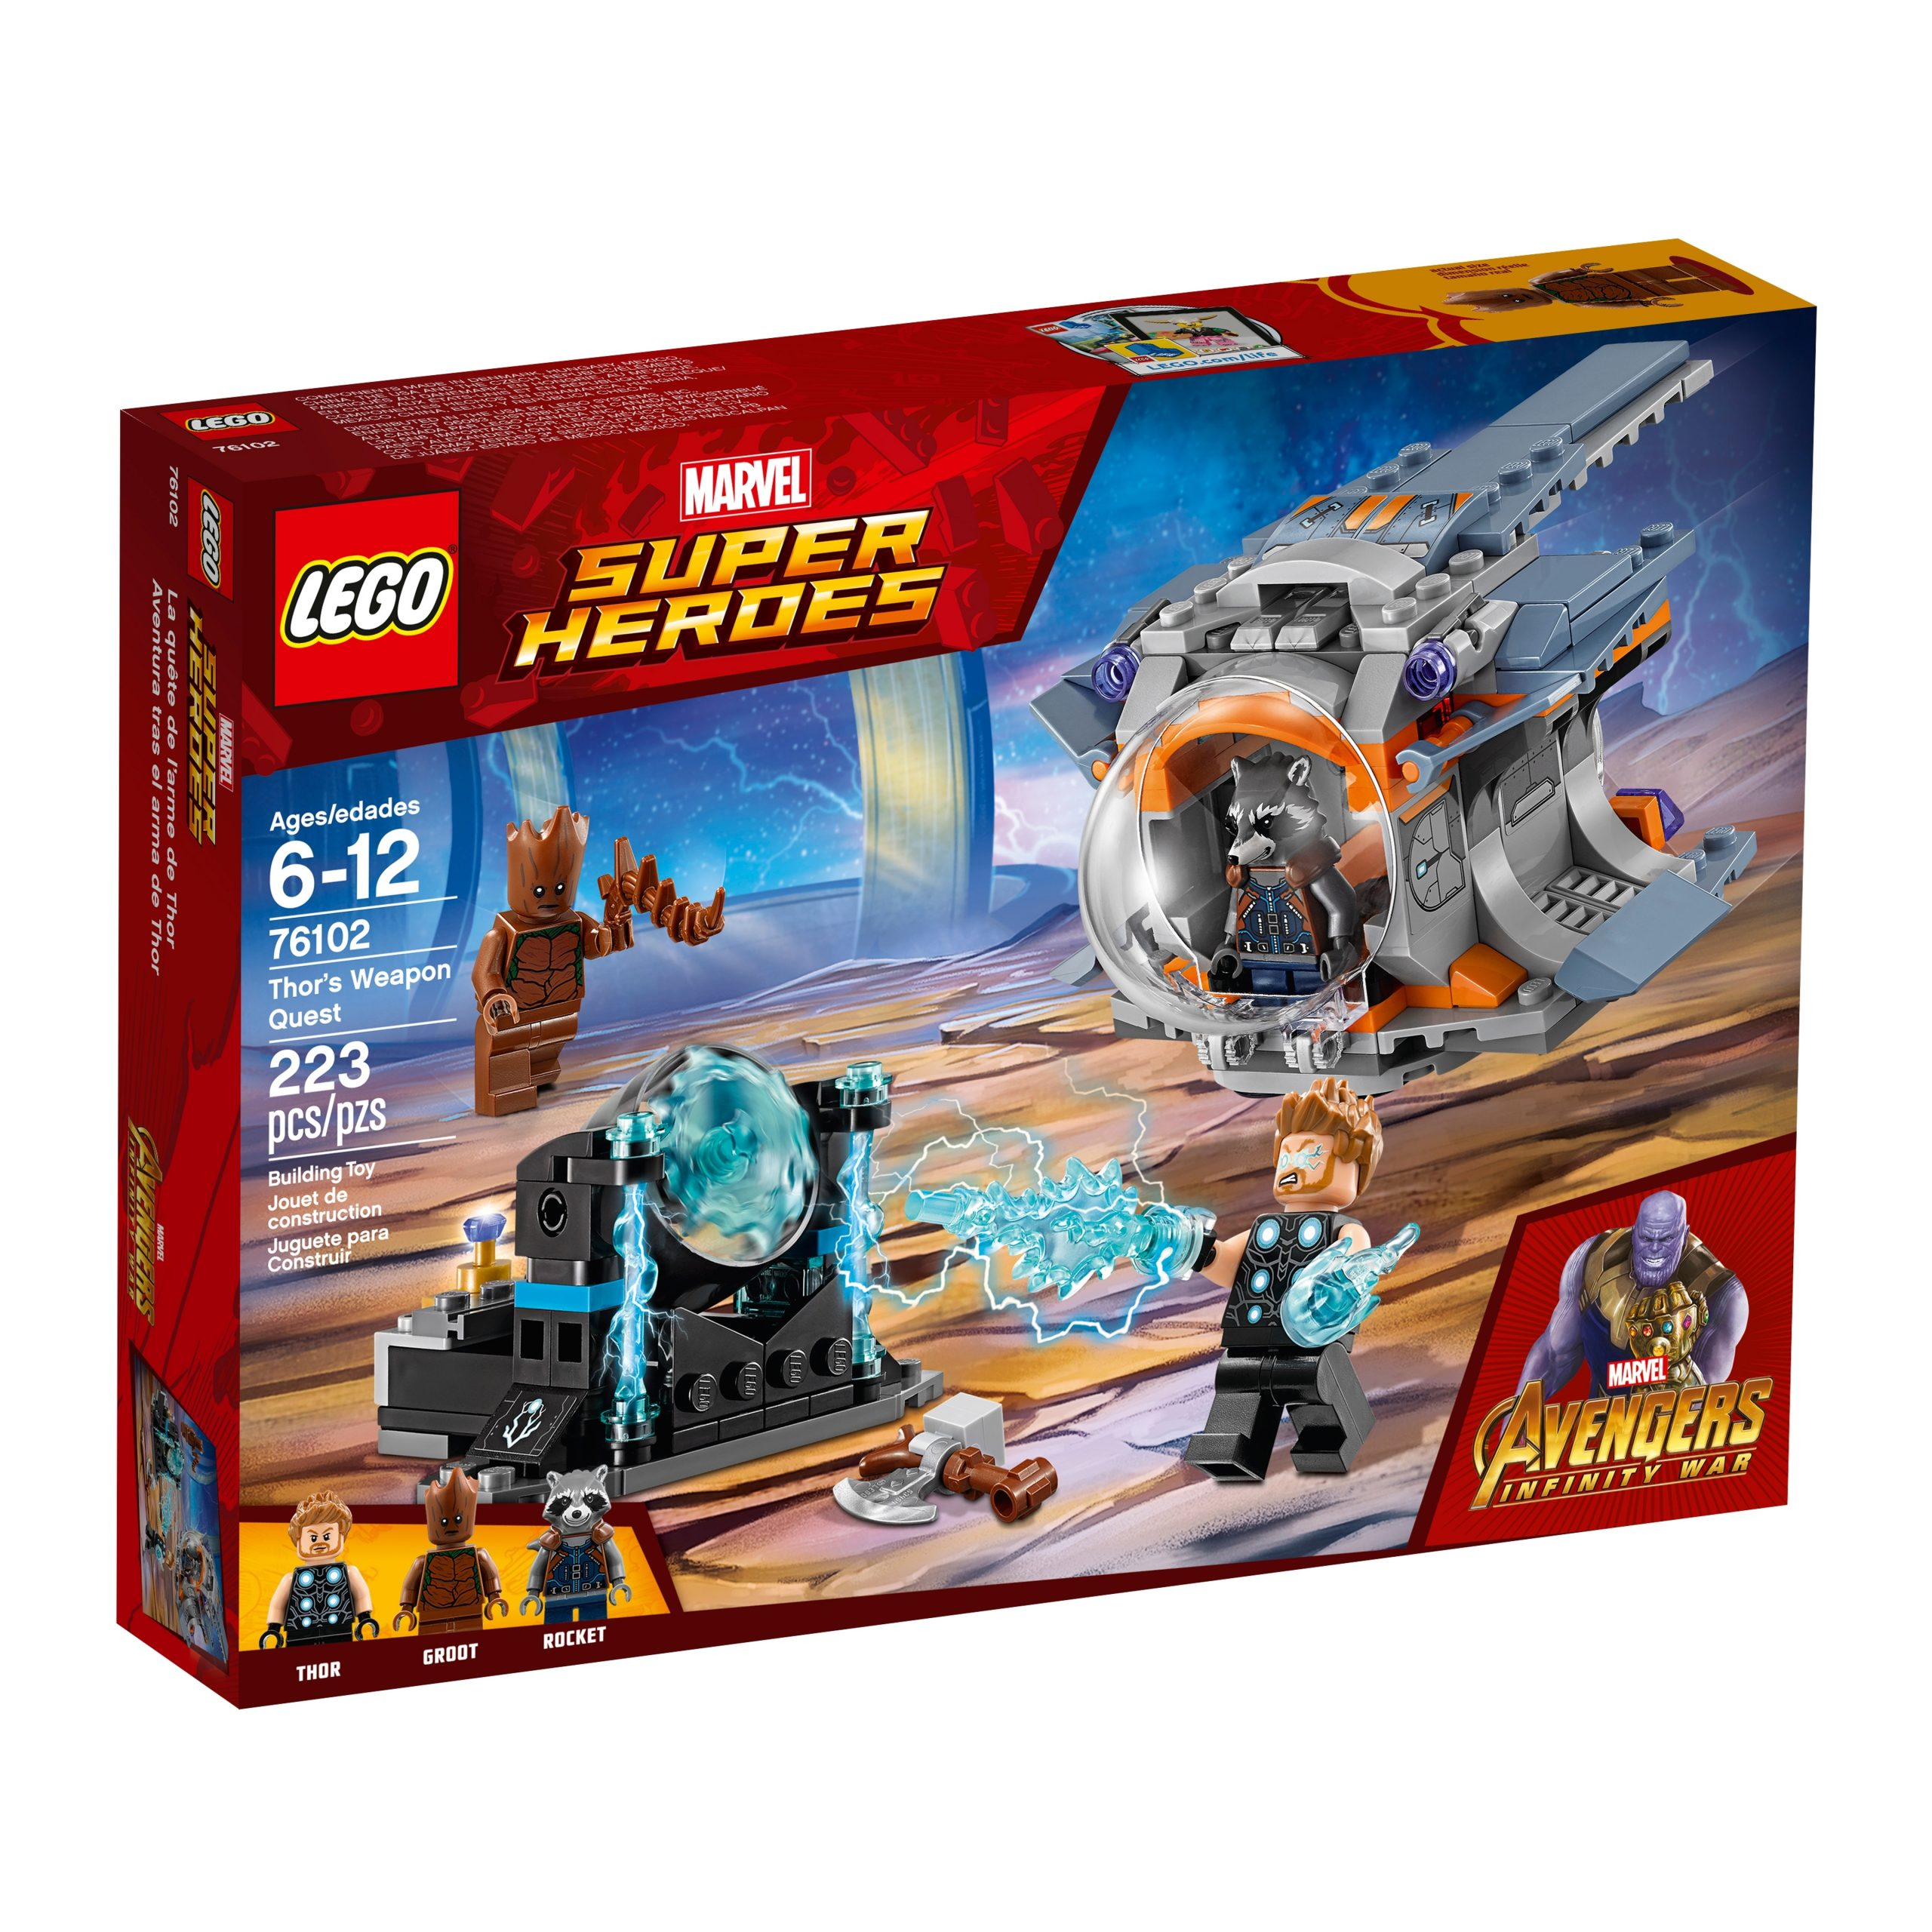 lego 76102 thors weapon quest scaled